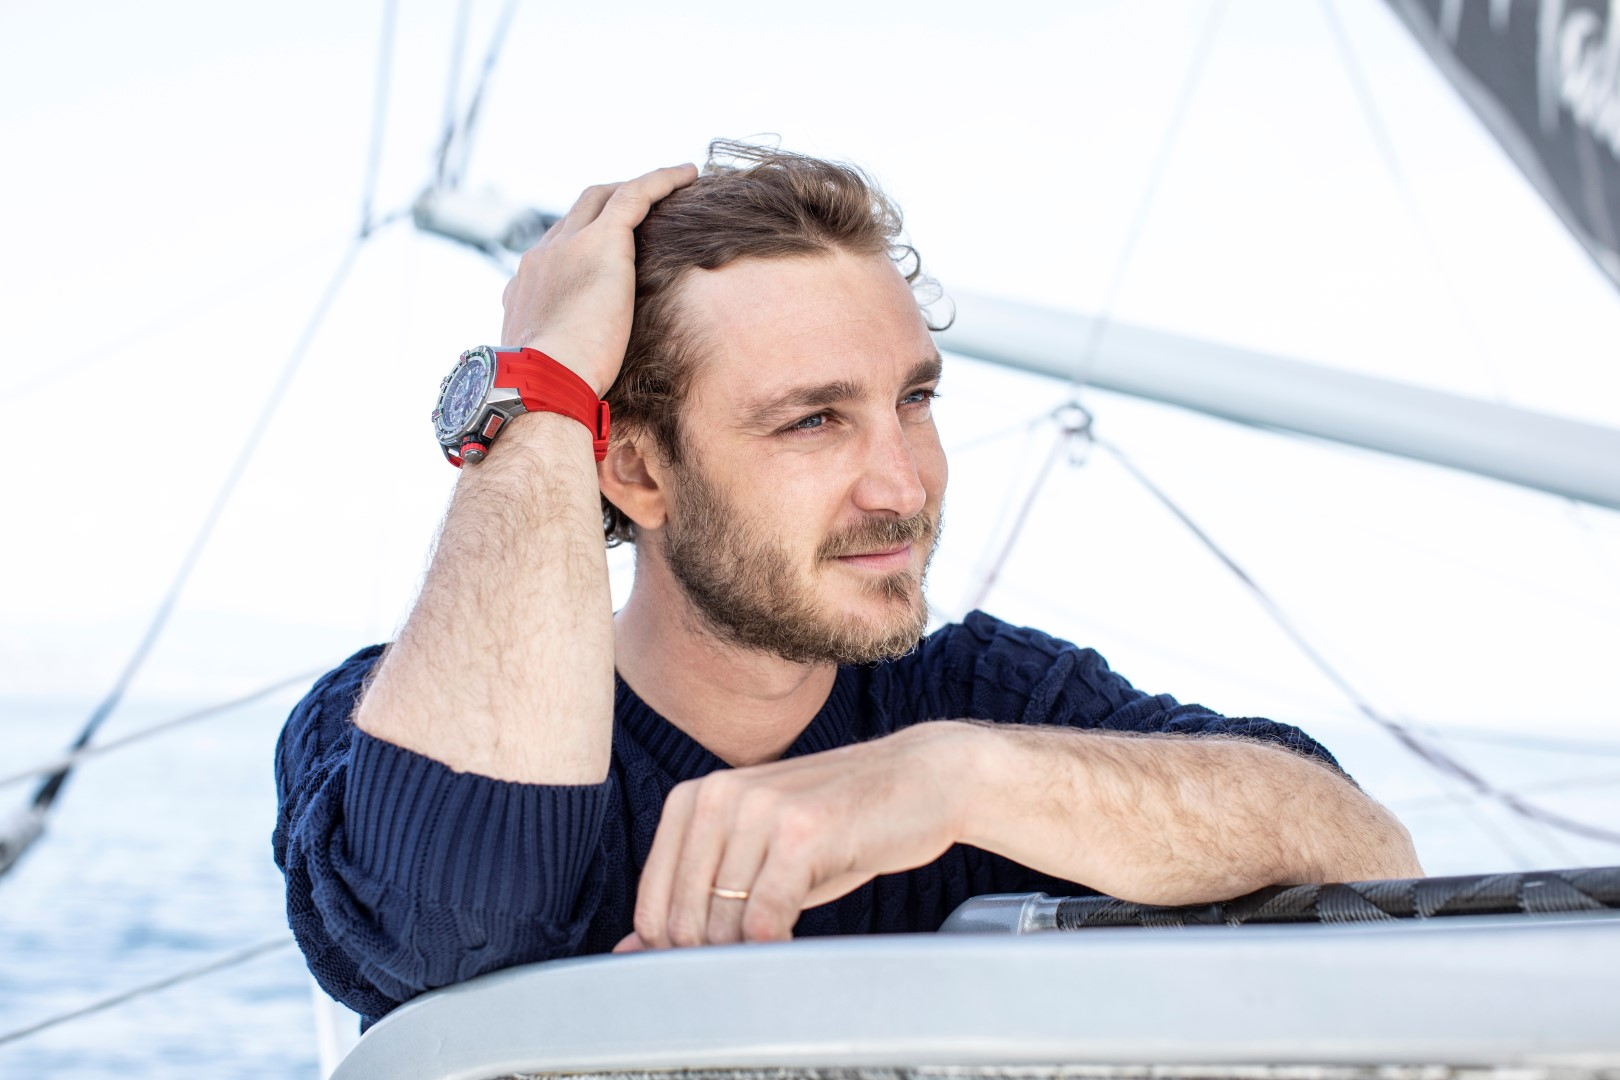 Richard Mille Pierre Casiraghi